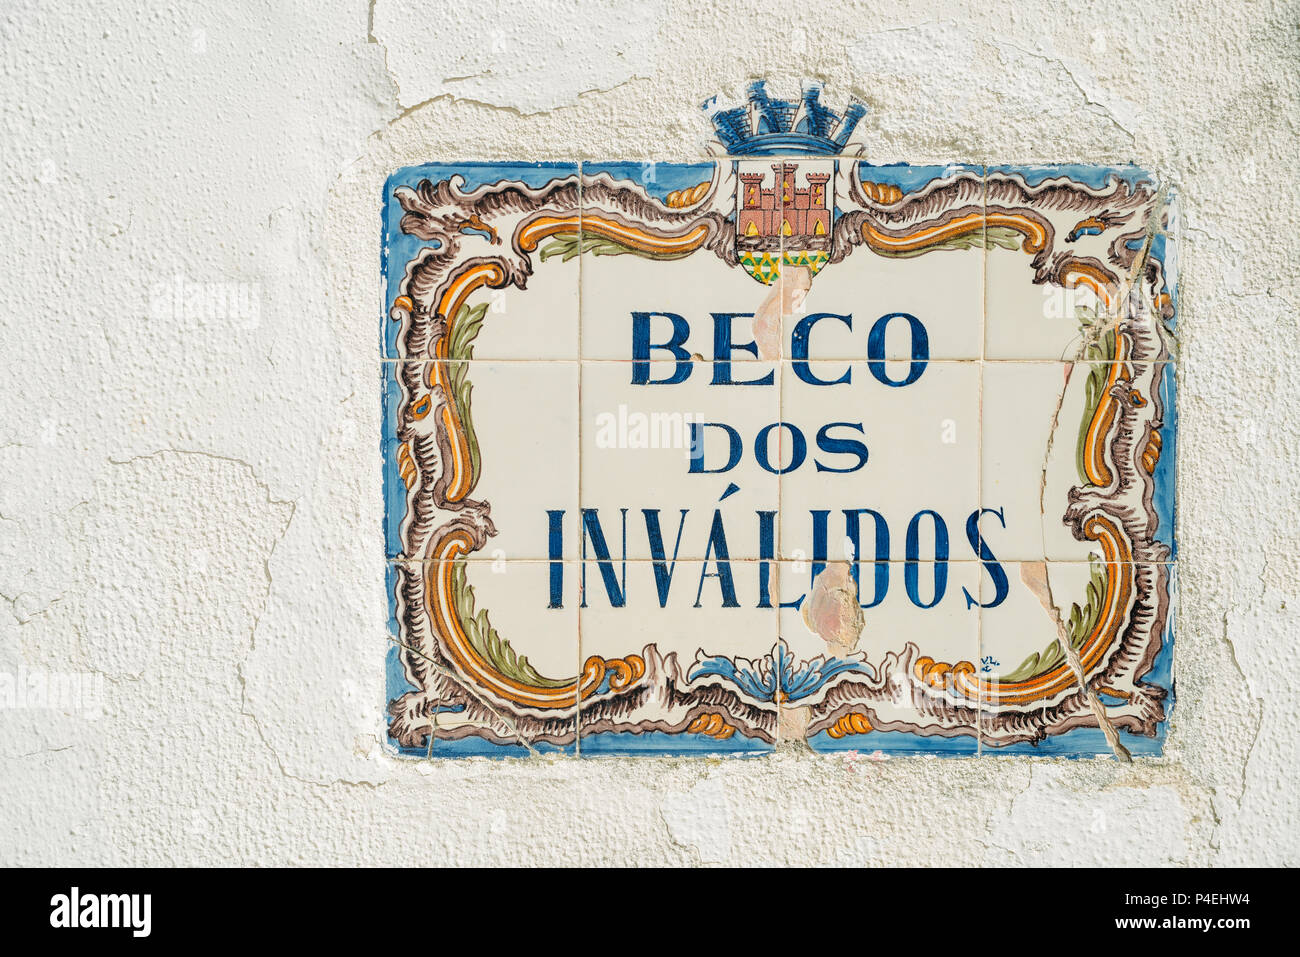 A traditional street sign in the historic centre of Cascais. Beco dos Invalidos means, alleyway of the handicapped - Stock Image